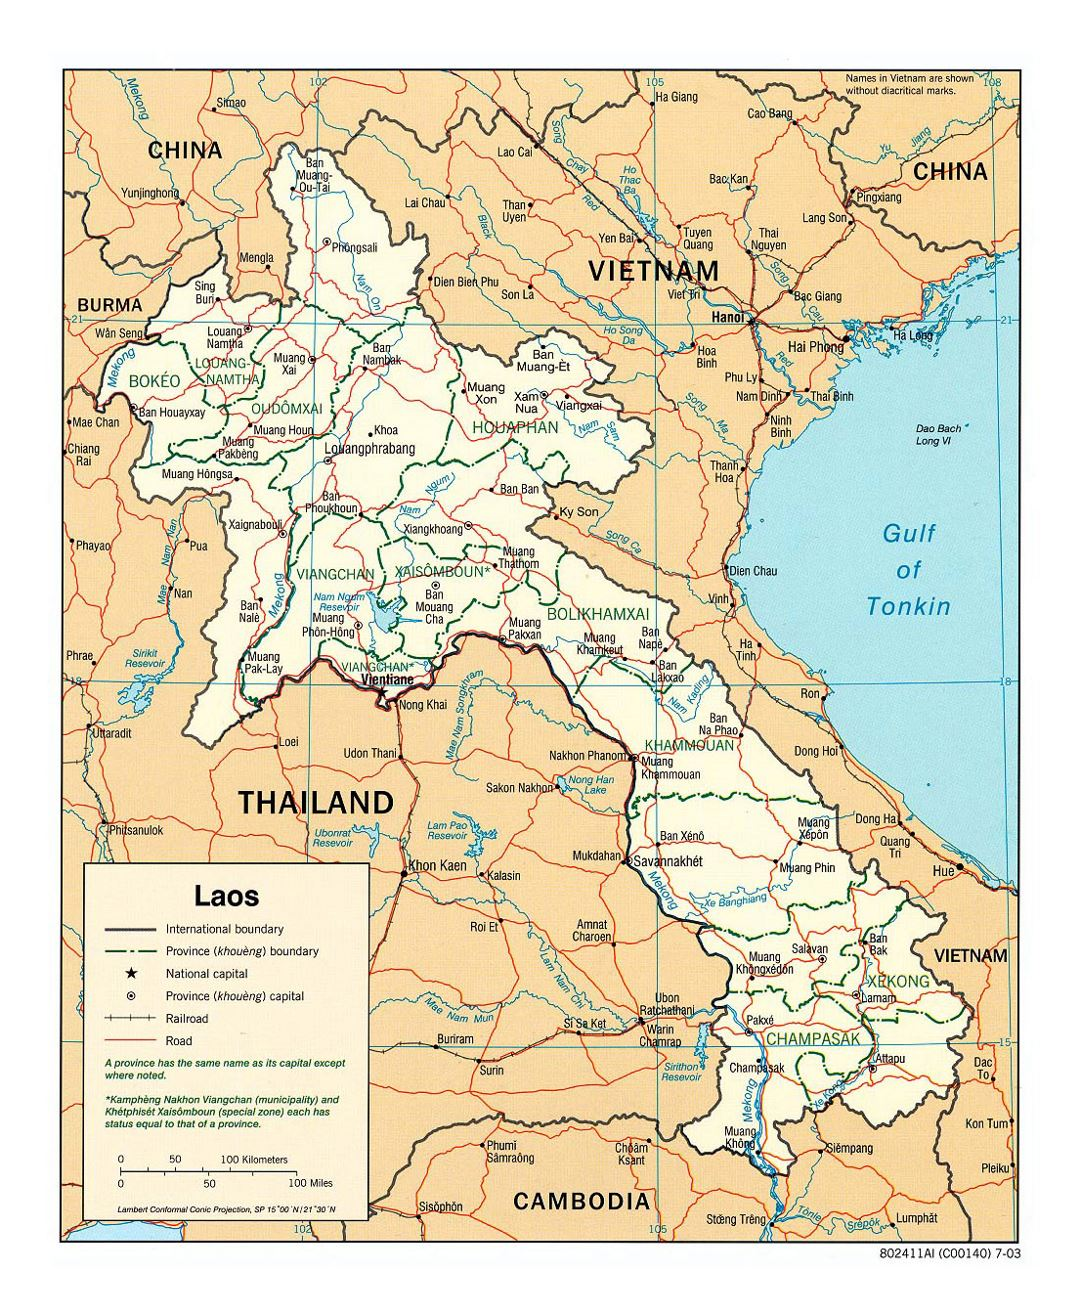 Detailed political and administrative map of Laos with roads, railroads and major cities - 2003